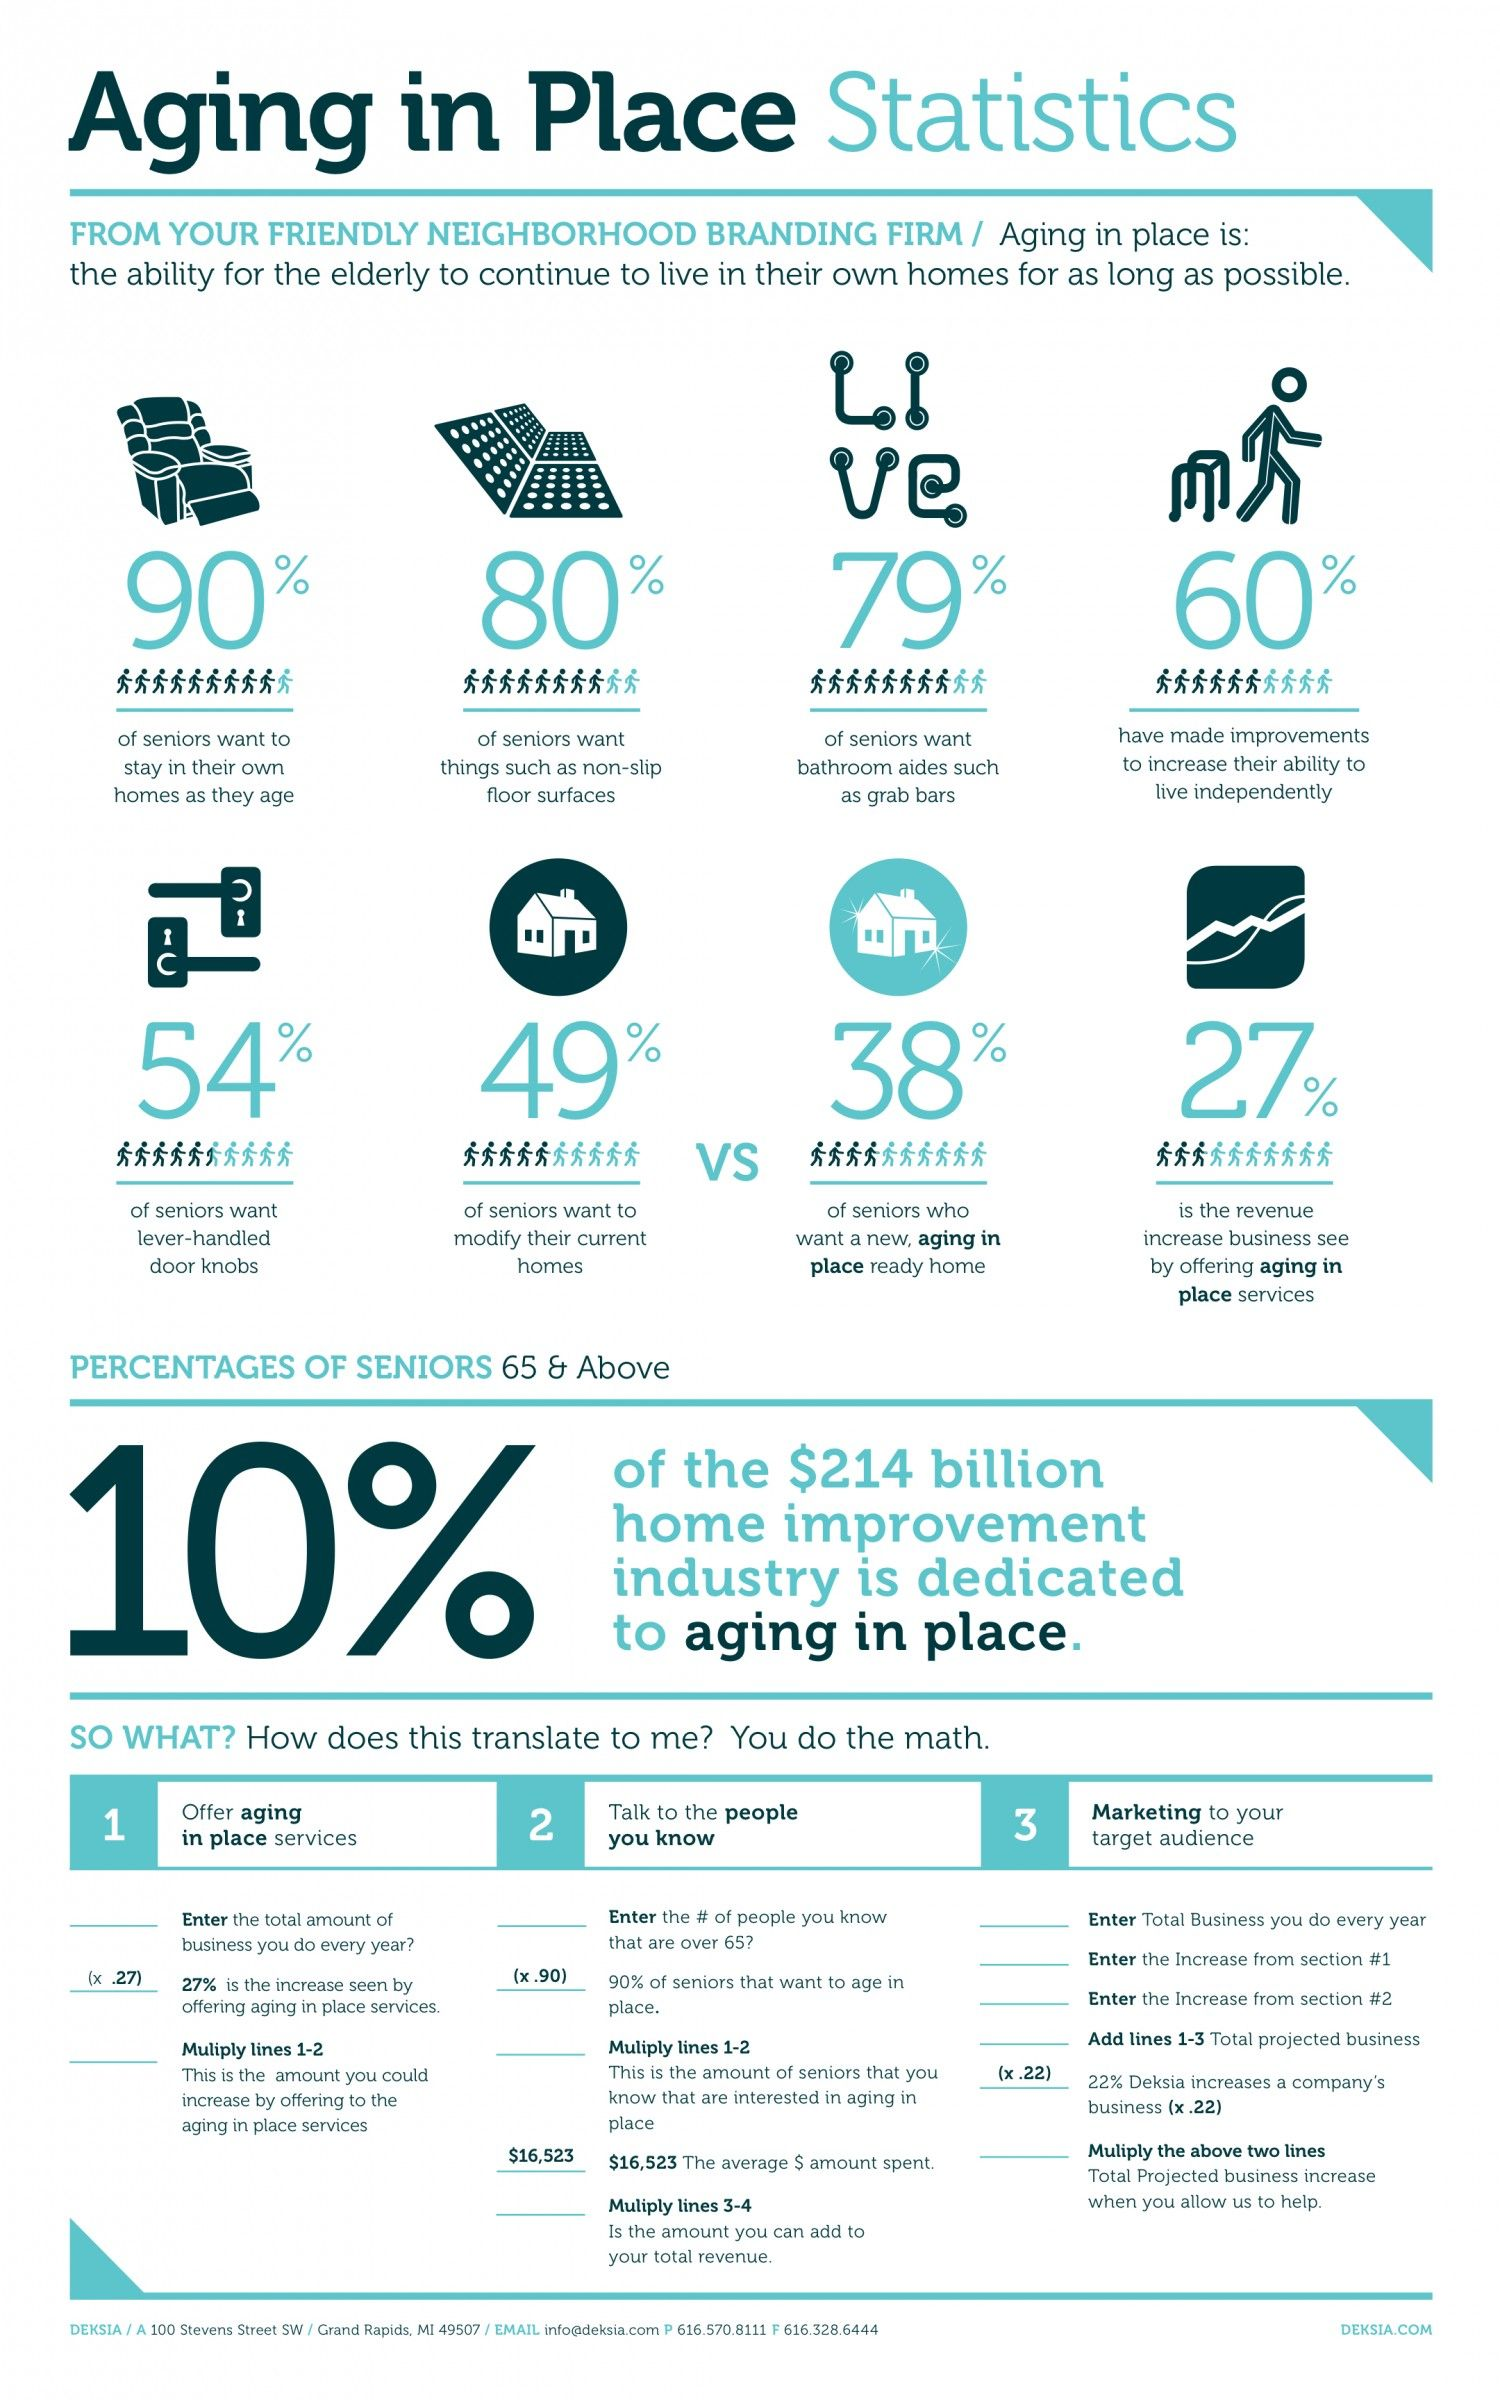 Aging In Place Statistics #aginginplaceqca #homewithoutage